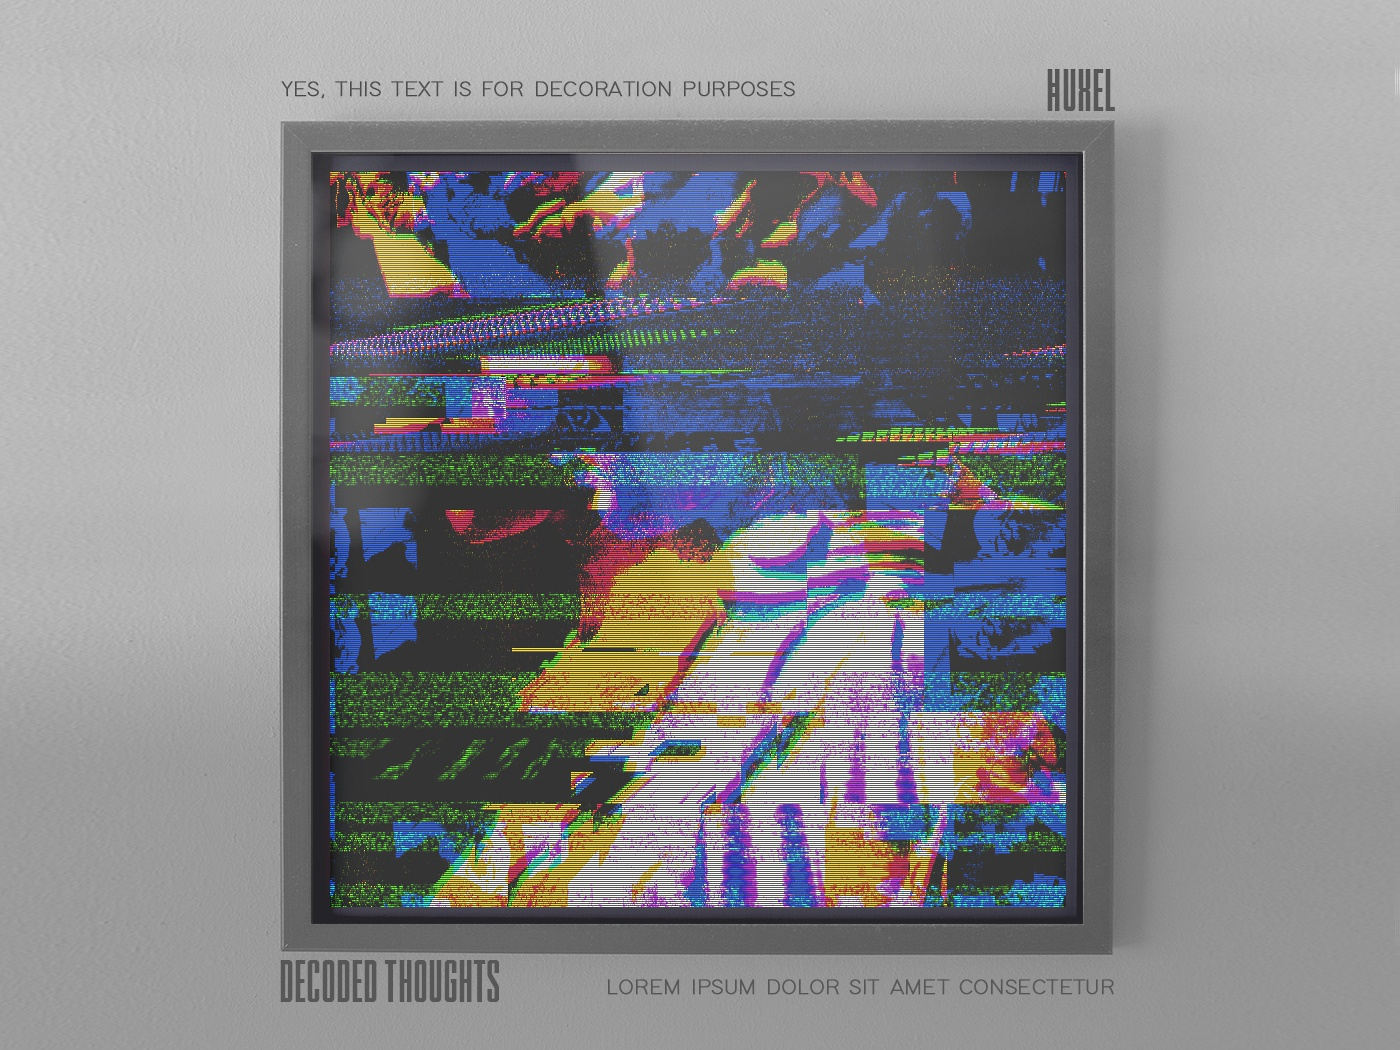 Decoded Thoughts psychedelic trippy futuristic framed aesthetic glitch abstract illustration artwork